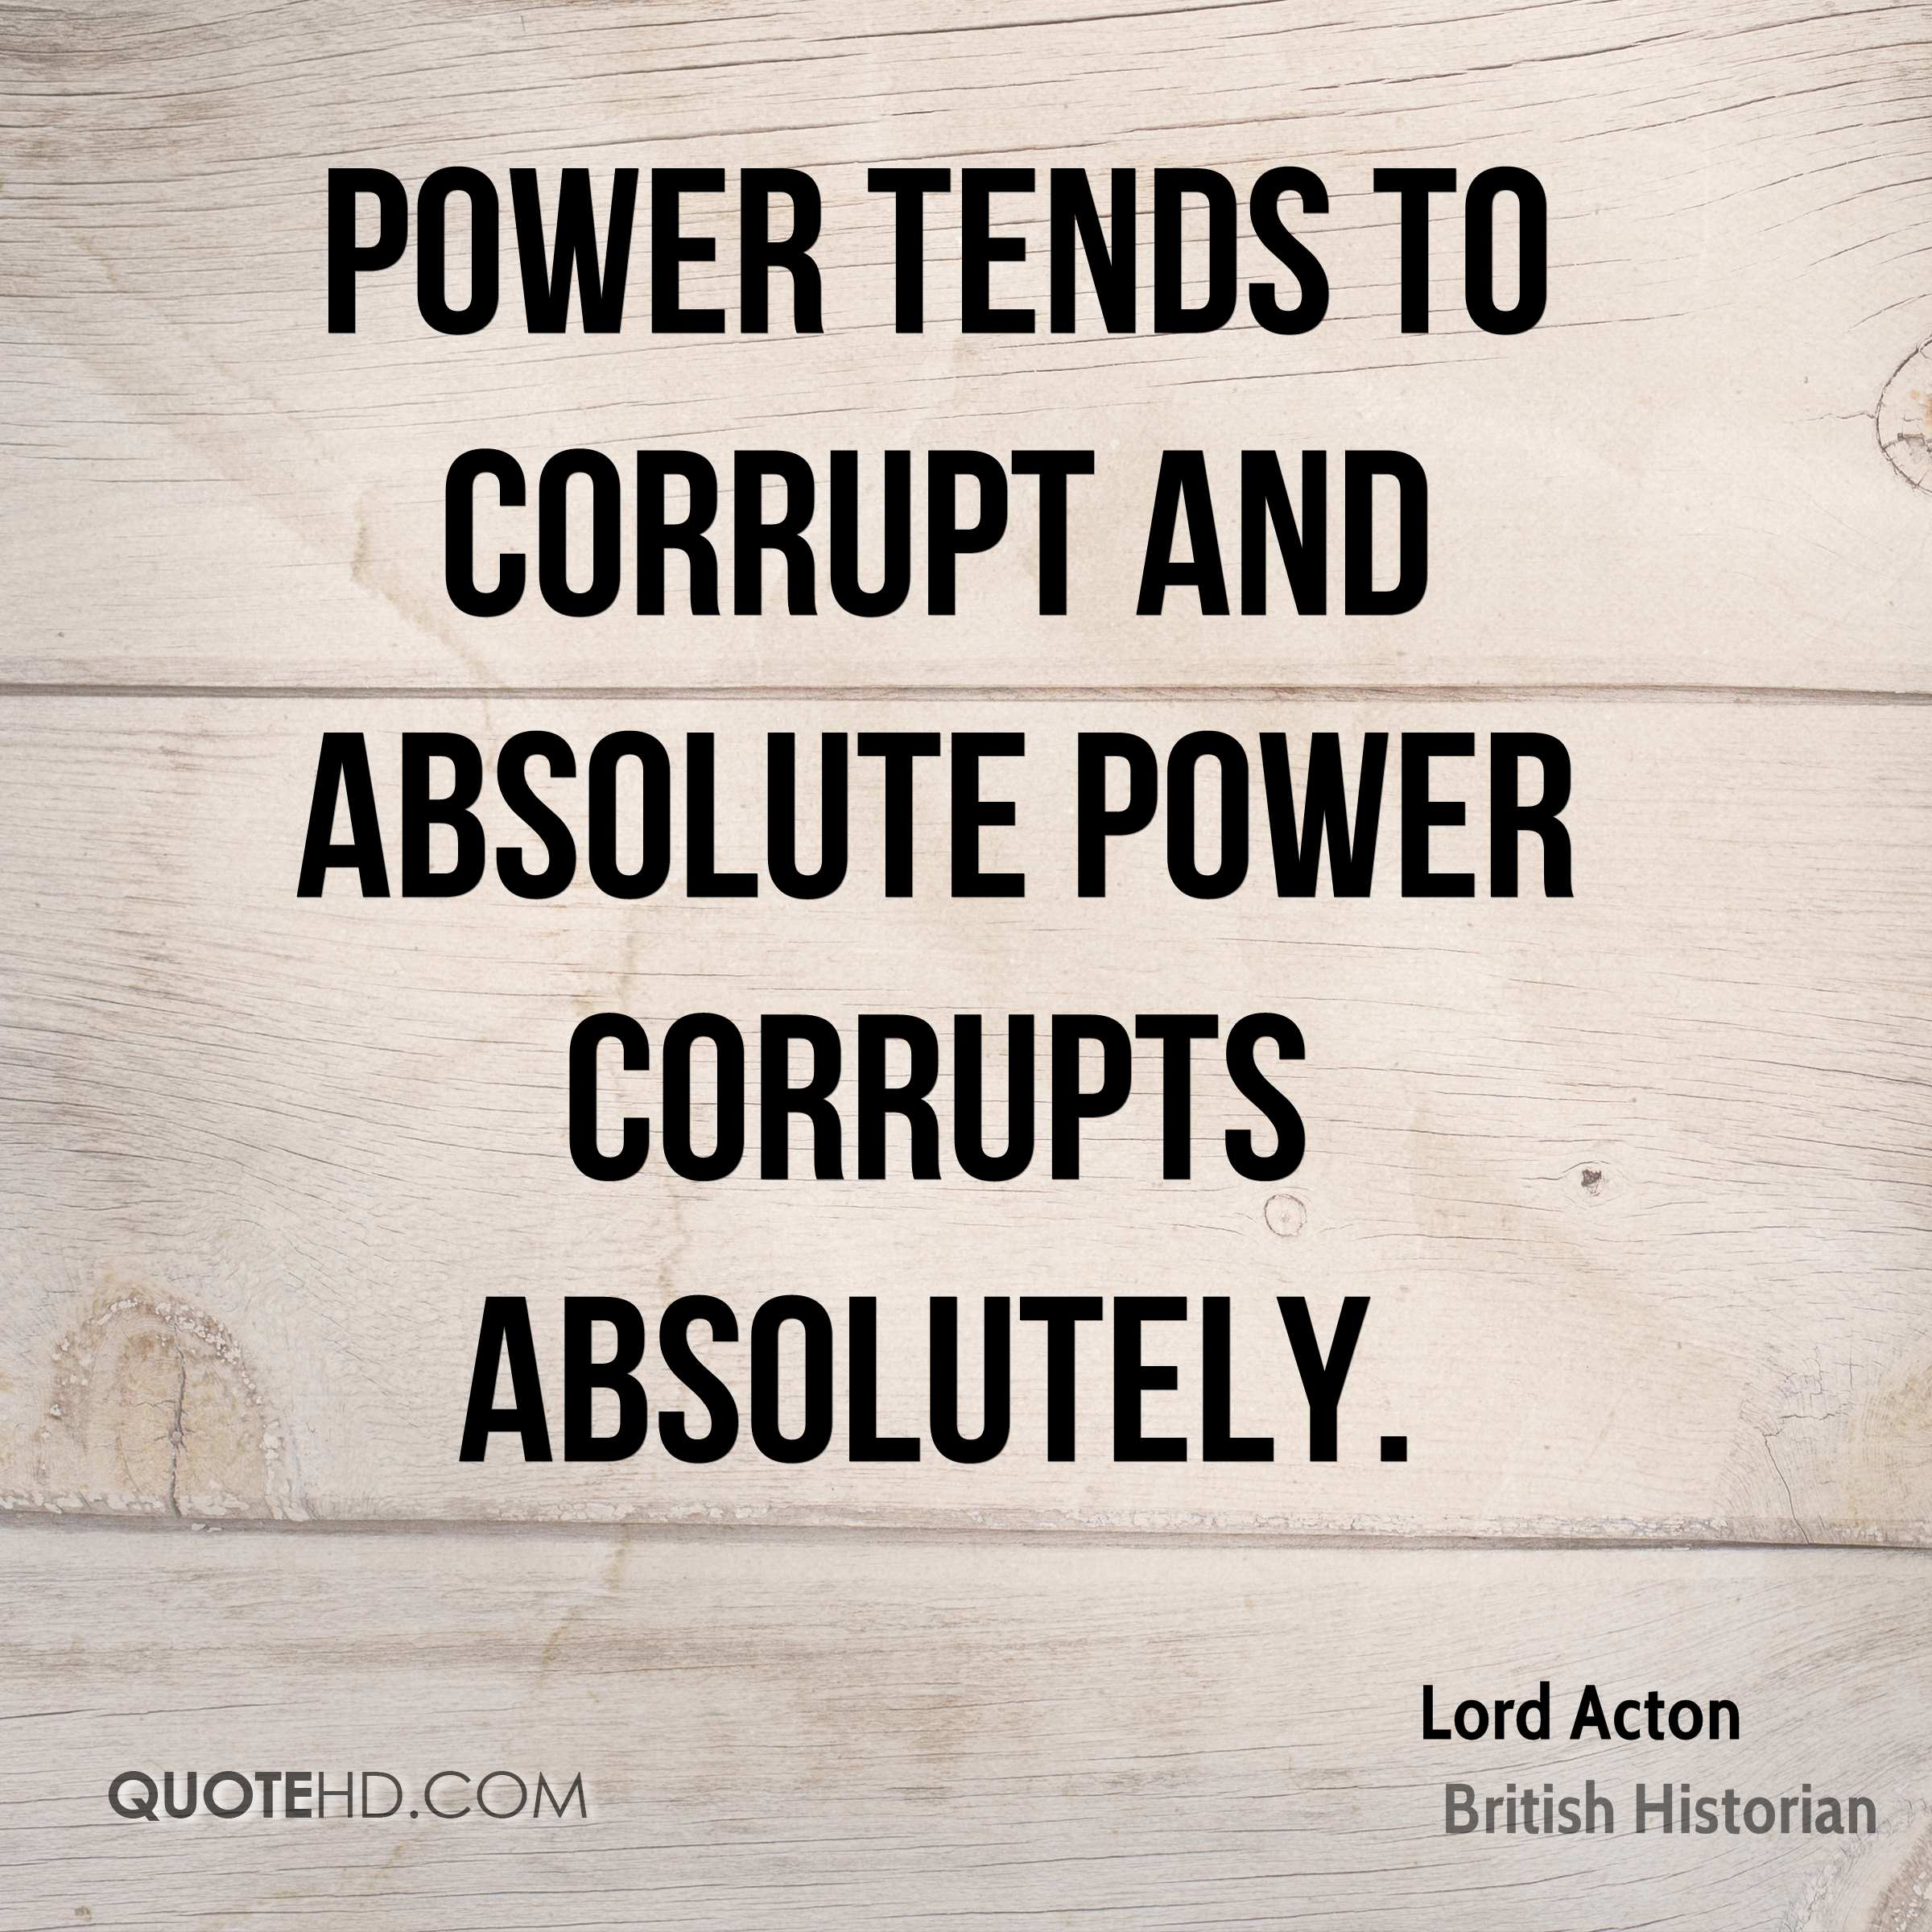 Quotes About Corruption: Lord Acton Power Quotes